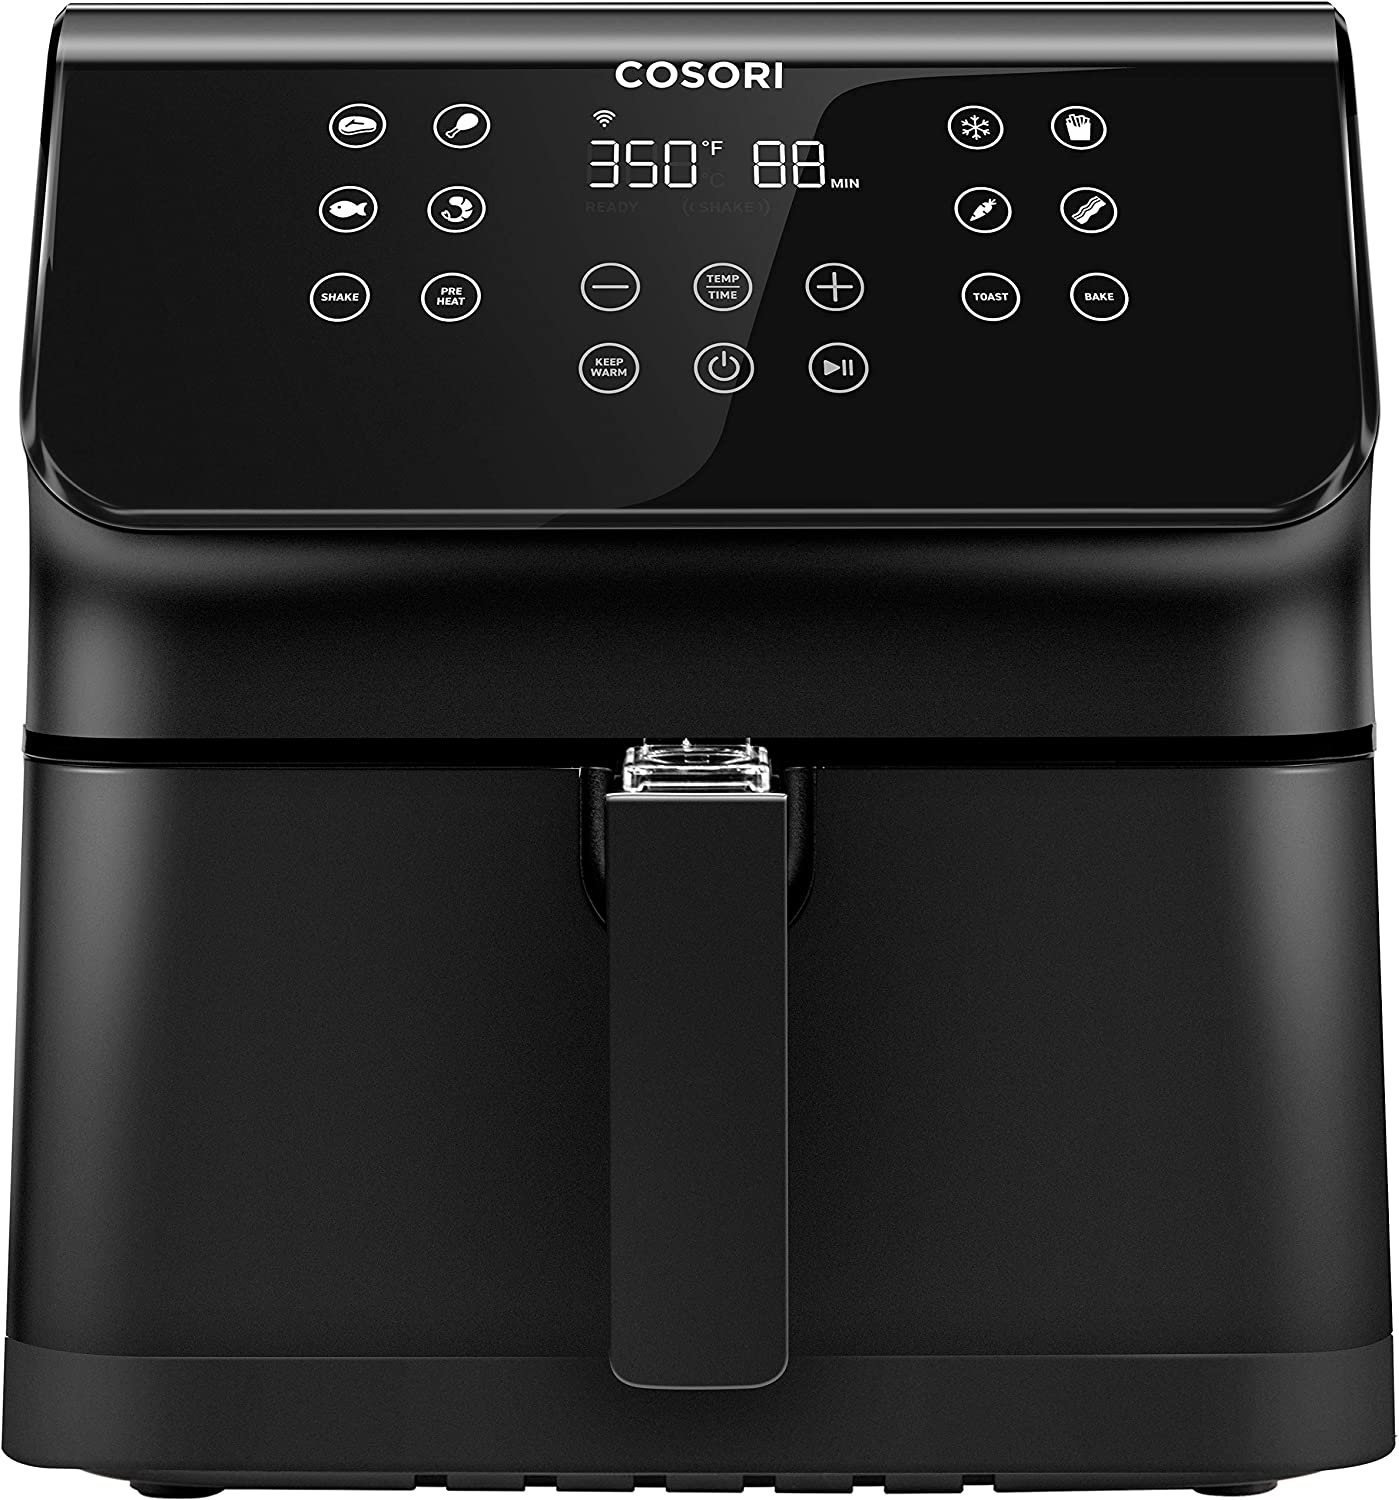 COSORI Smart Air Fryer Oven 5.8QT with Cookbook(100 Recipes) Wi-Fi App & Alexa Control/Google home, Customizable 10 Presets & Shake Reminder, Keep Warm Preheat, Nonstick Removable Basket, Black